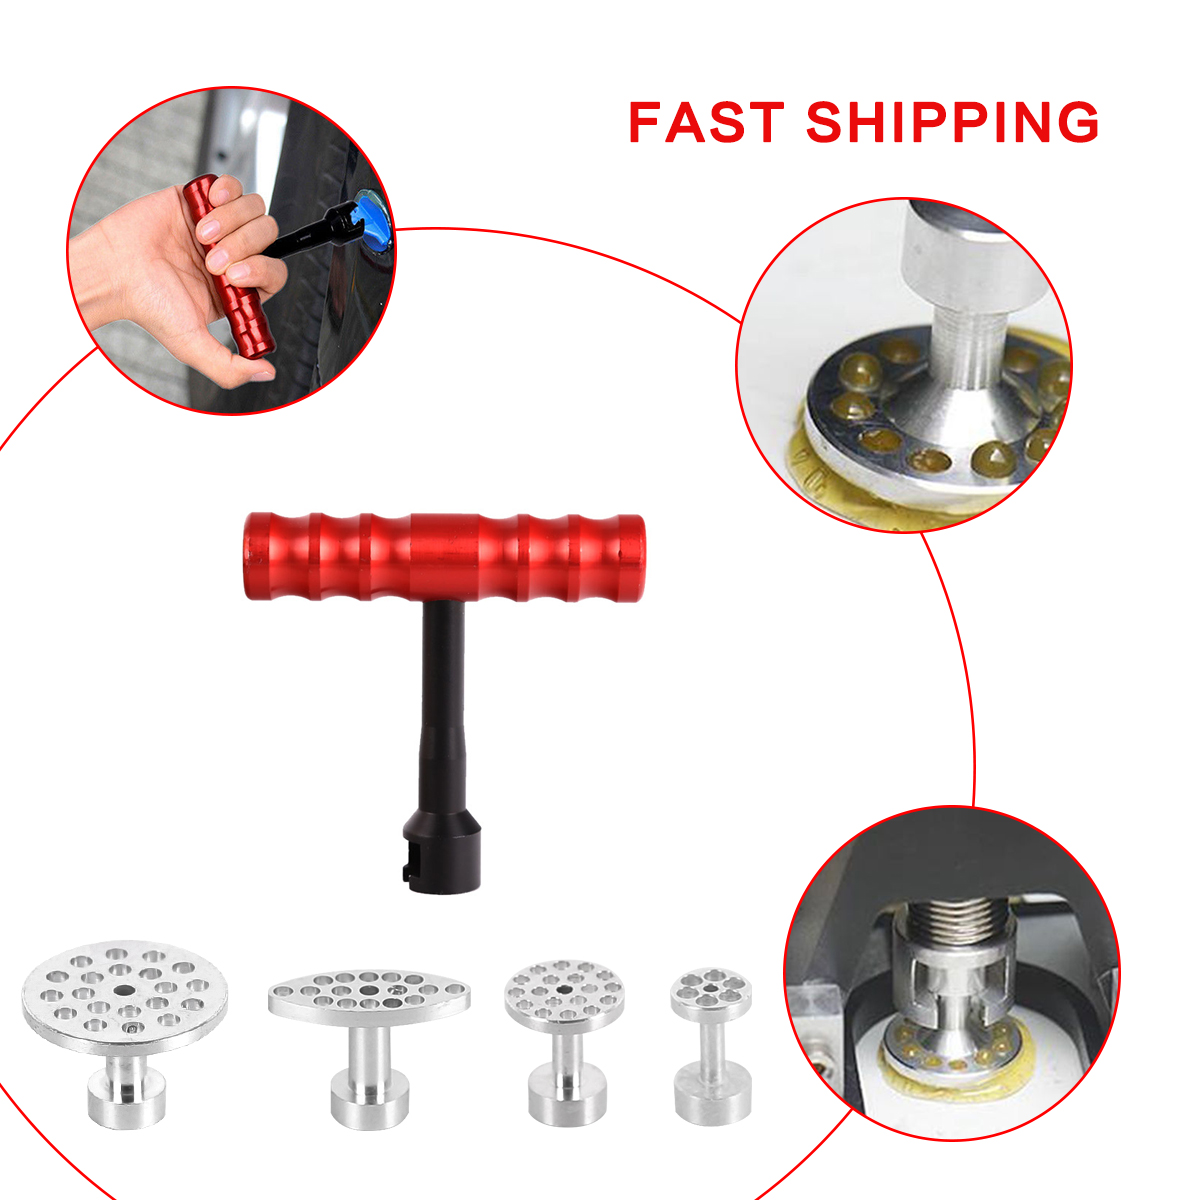 4pcs Car Dent Removal Paintless Dent Repair Kit Aluminum Pdr Glue Puller Tabs Glue Pulling Tabs Auto Body Dent Removal Hand Tool Easy And Simple To Handle Tool Sets